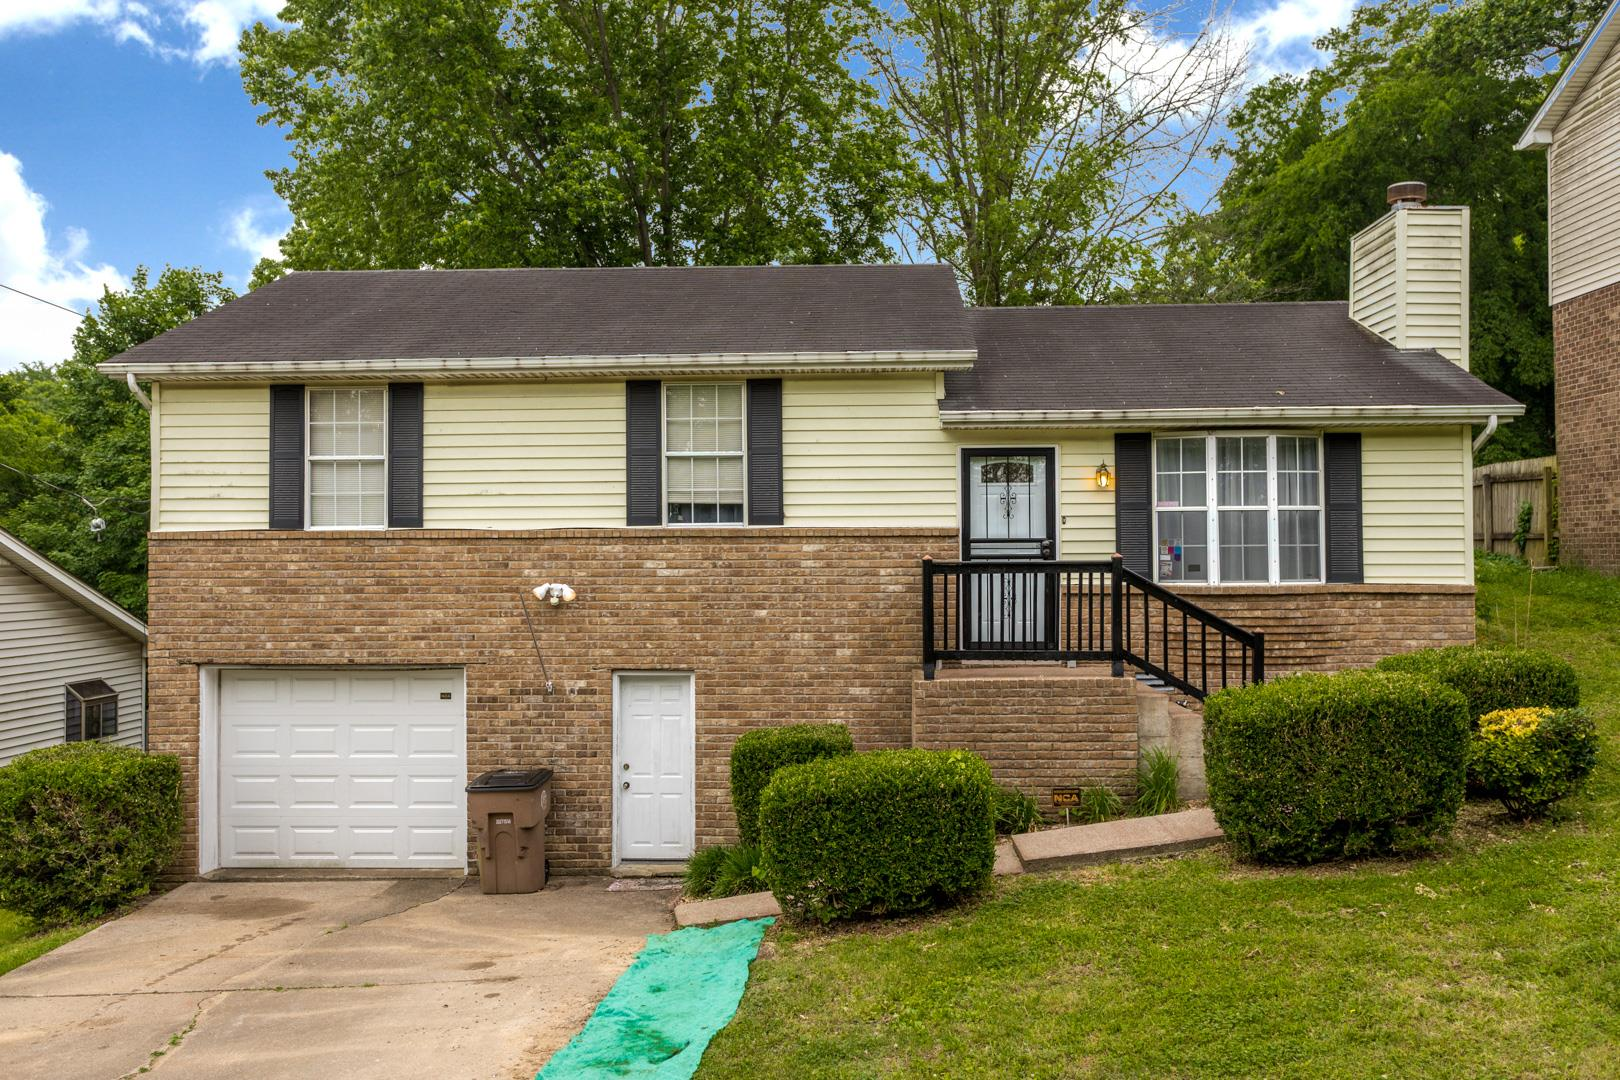 1104 Rural Hill Rd, Nashville-Antioch in Davidson County County, TN 37013 Home for Sale